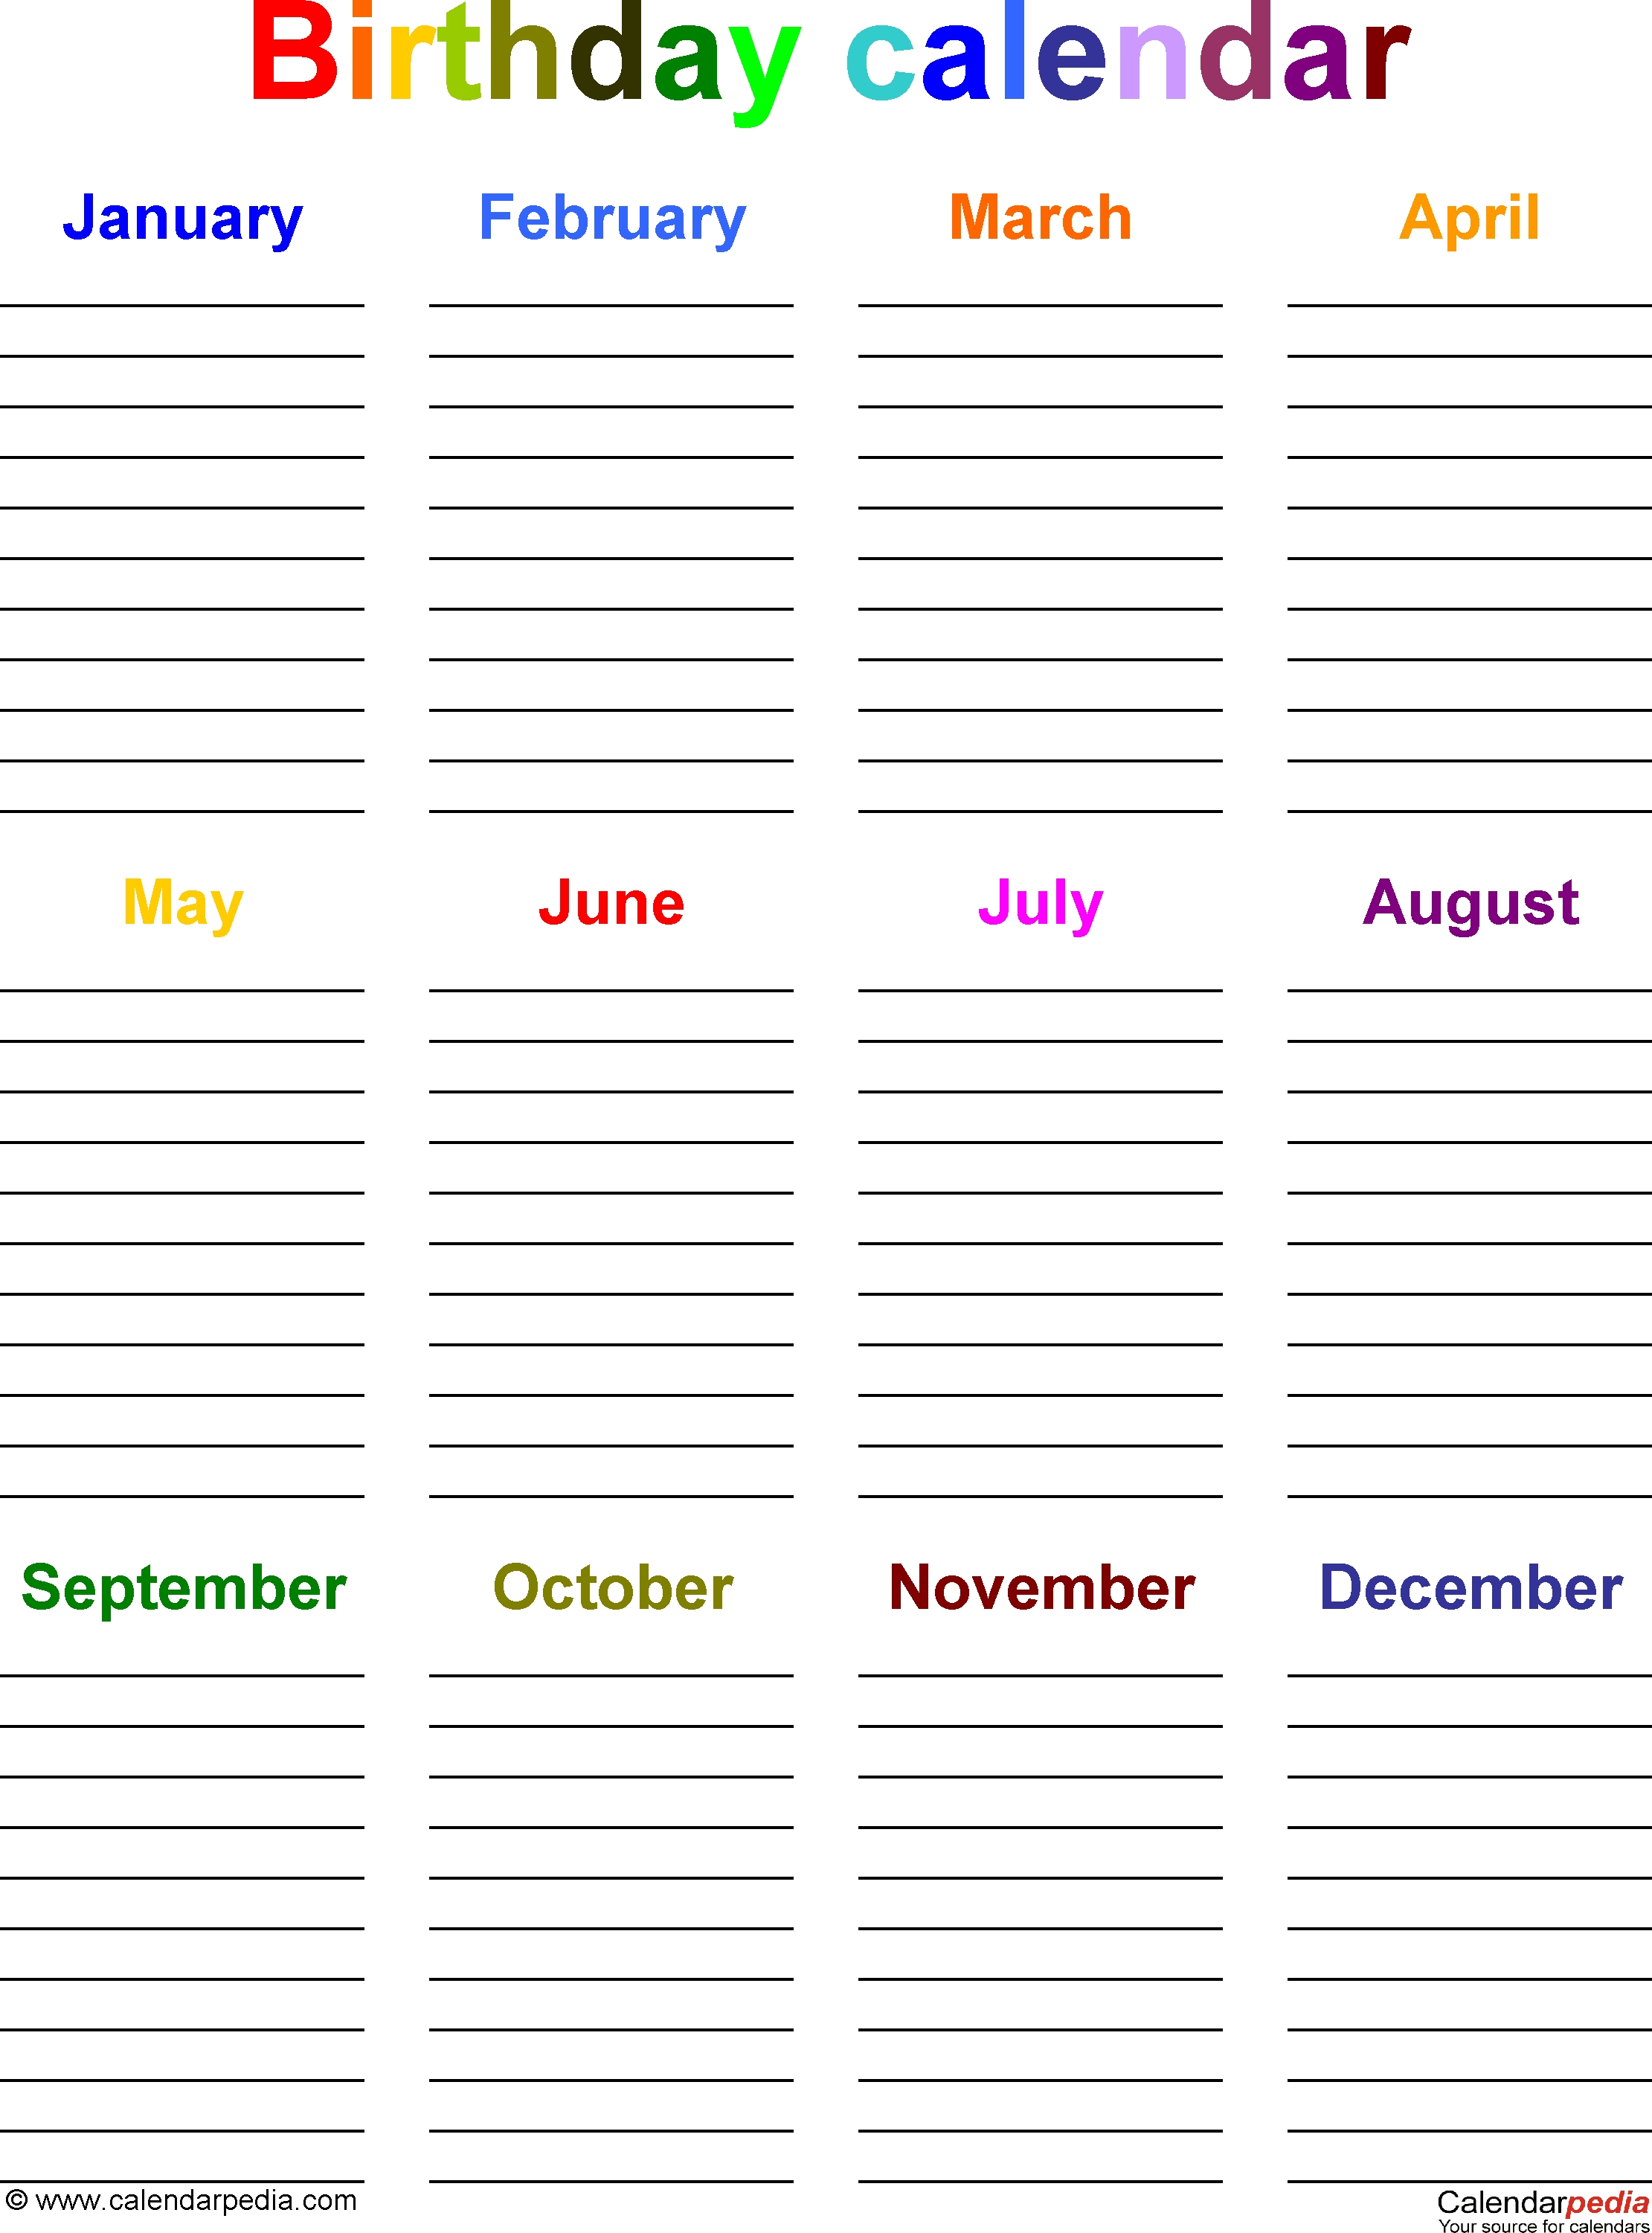 Birthday Calendars - 7 Free Printable Word Templates  Free Printable Birthday Chart Templates